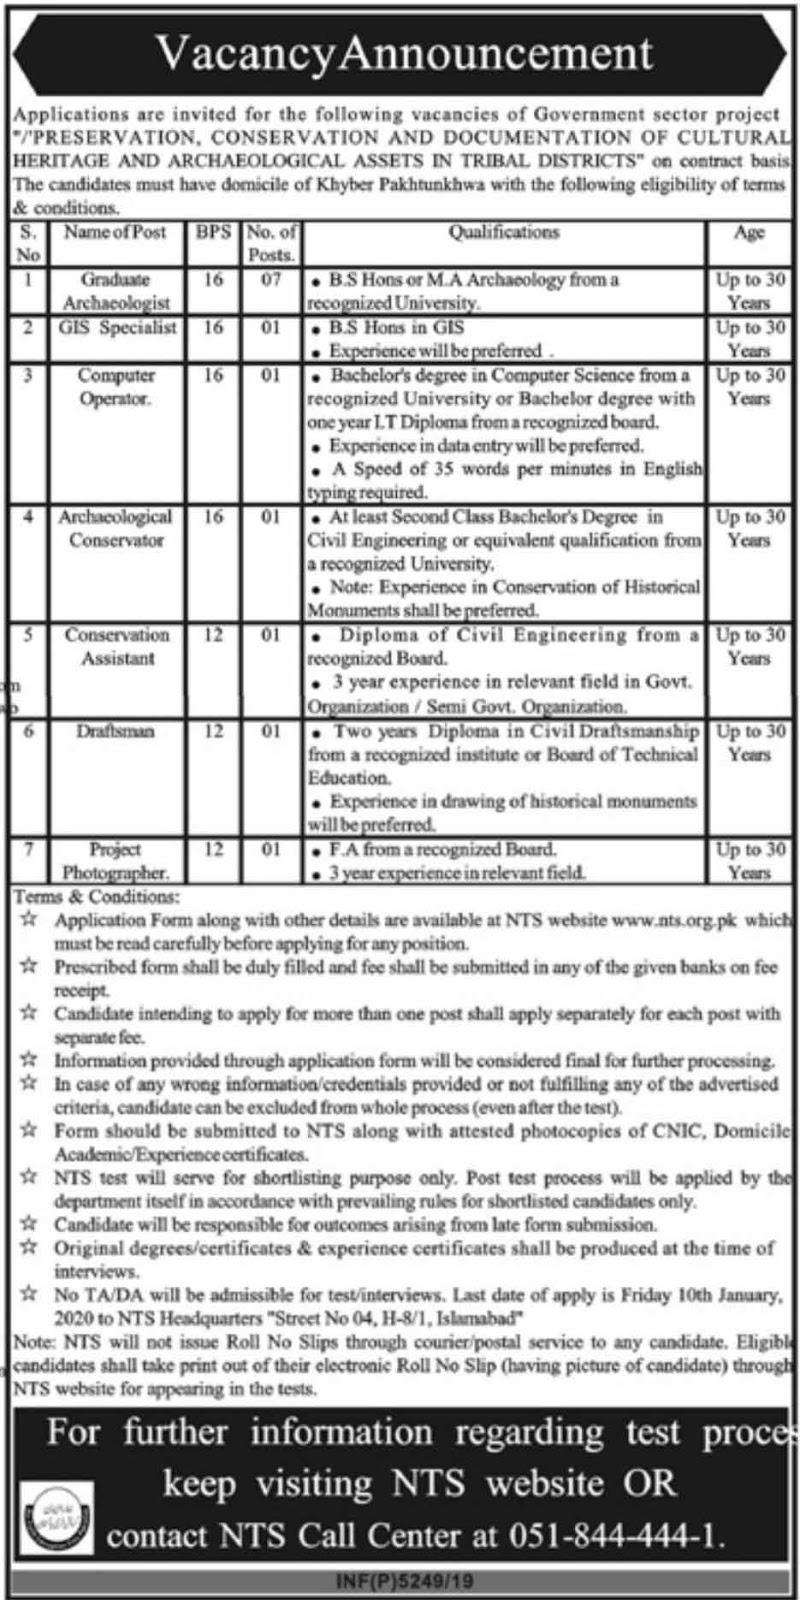 NTS Jobs in Govt Sector Project Khyber Pakhtunkhwa